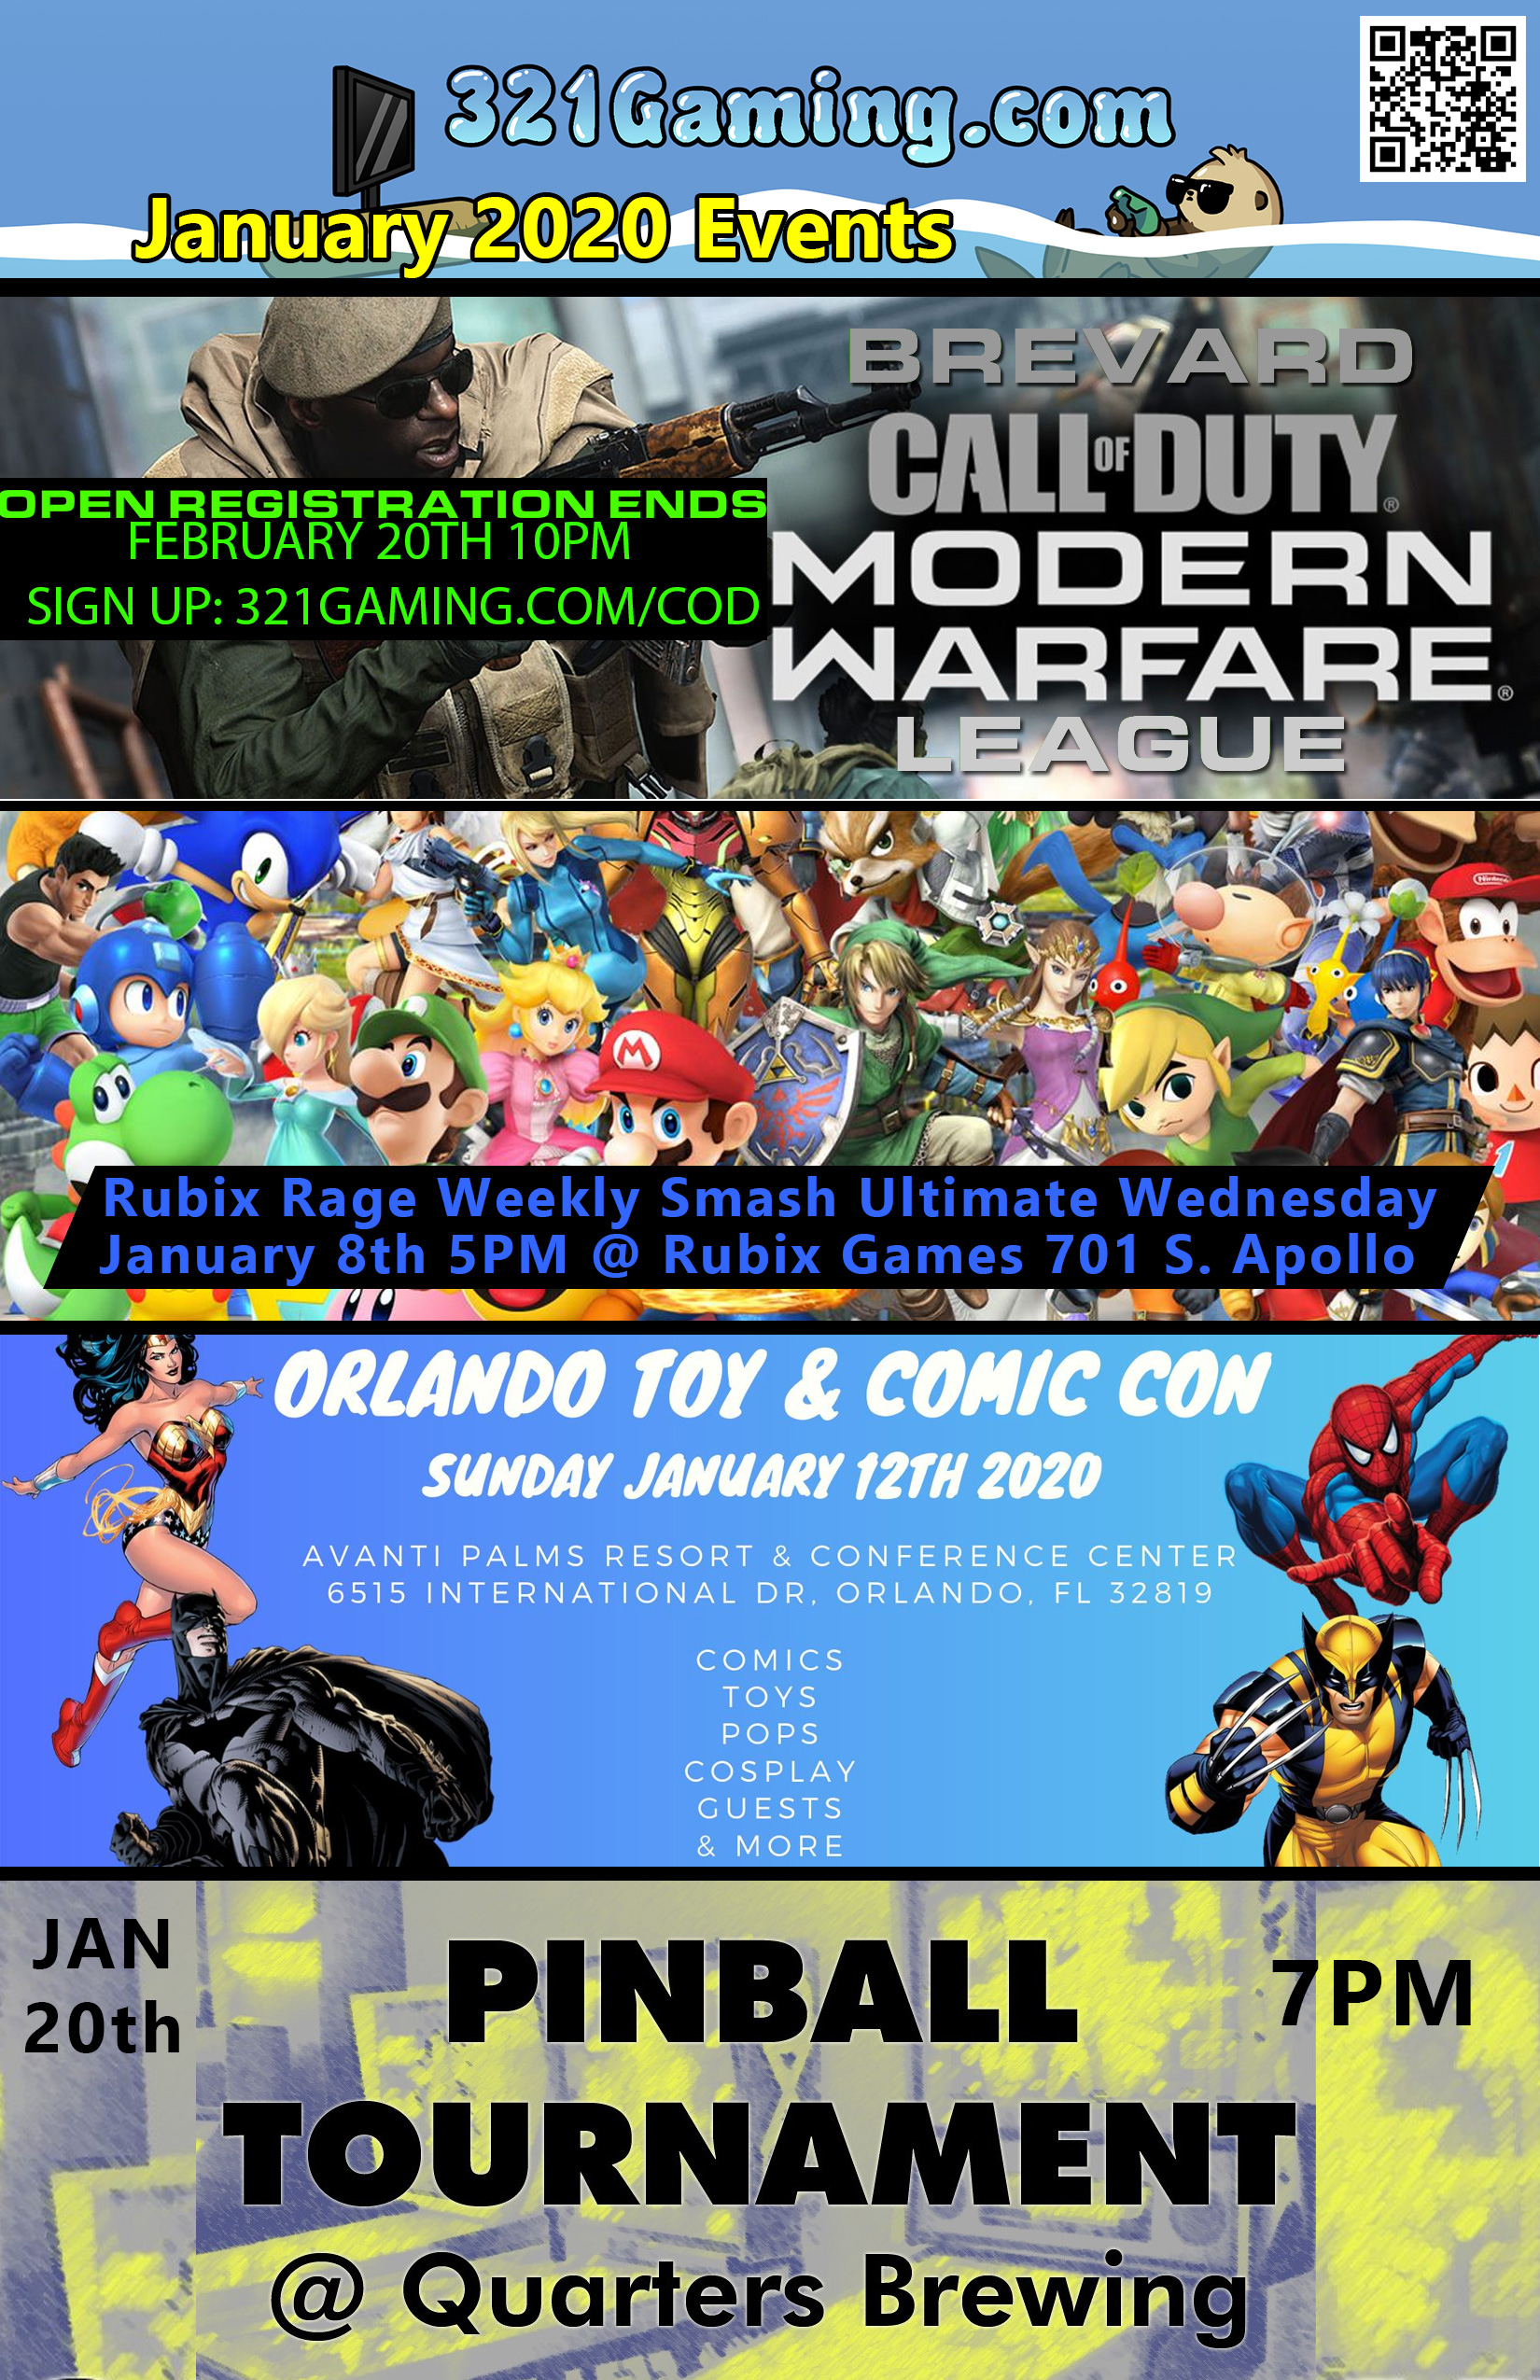 florida gaming events